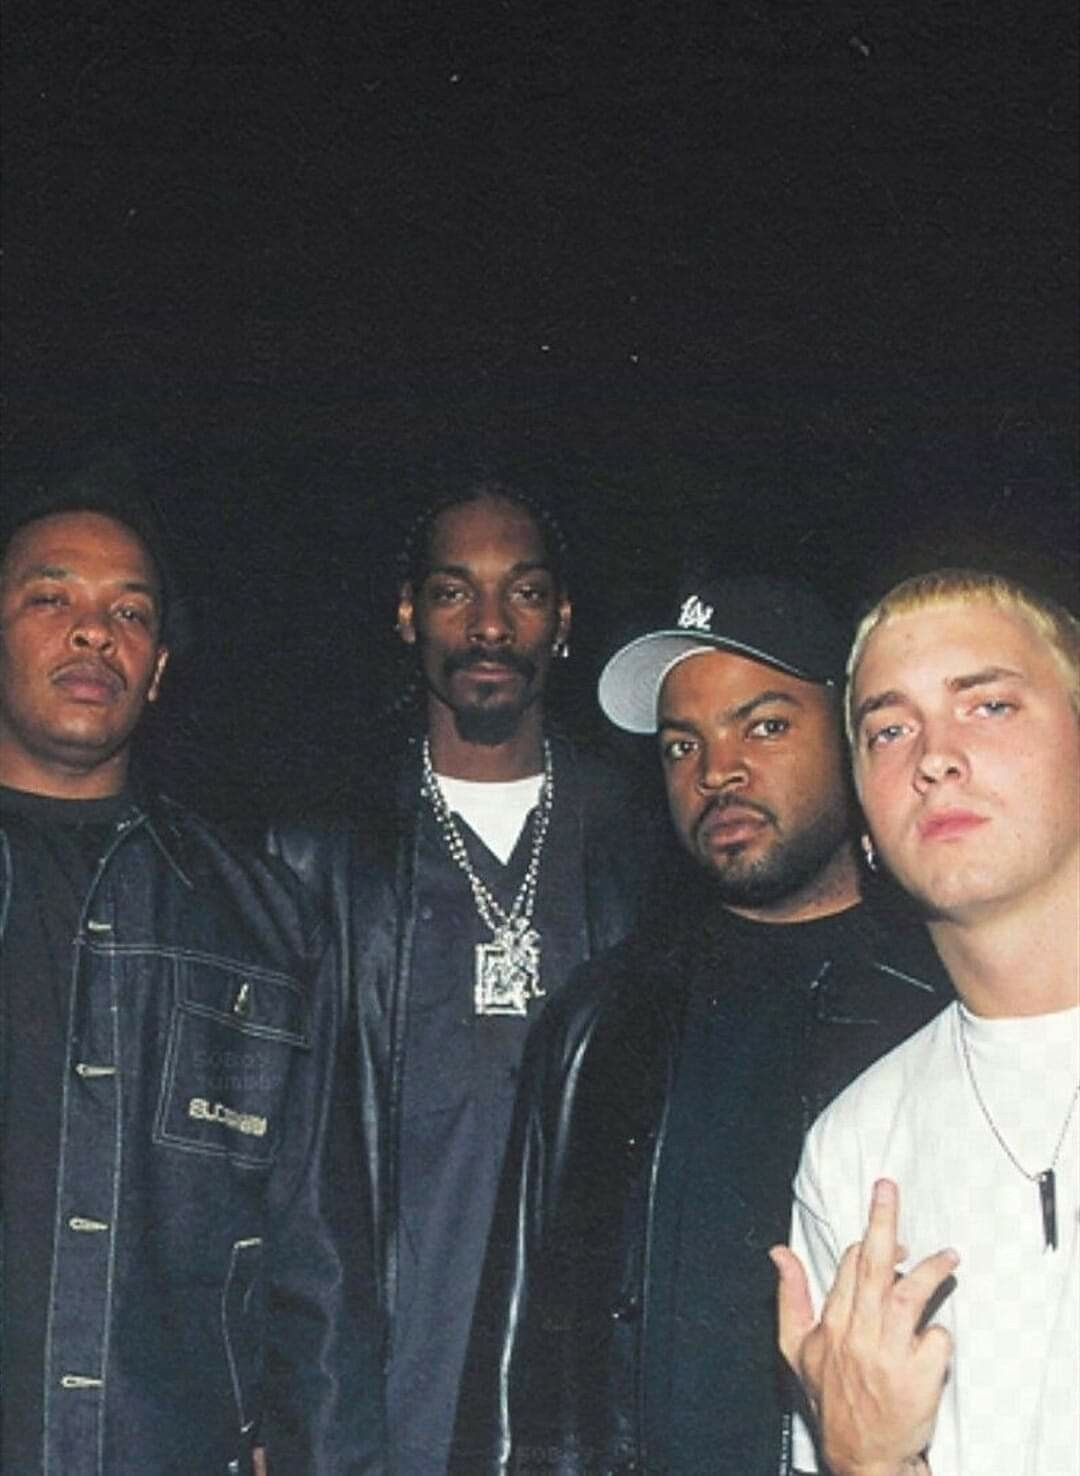 Pin By Maicol Alejandro On Vintage Photos In 2020 90s Rappers Eminem Gangsta Rap